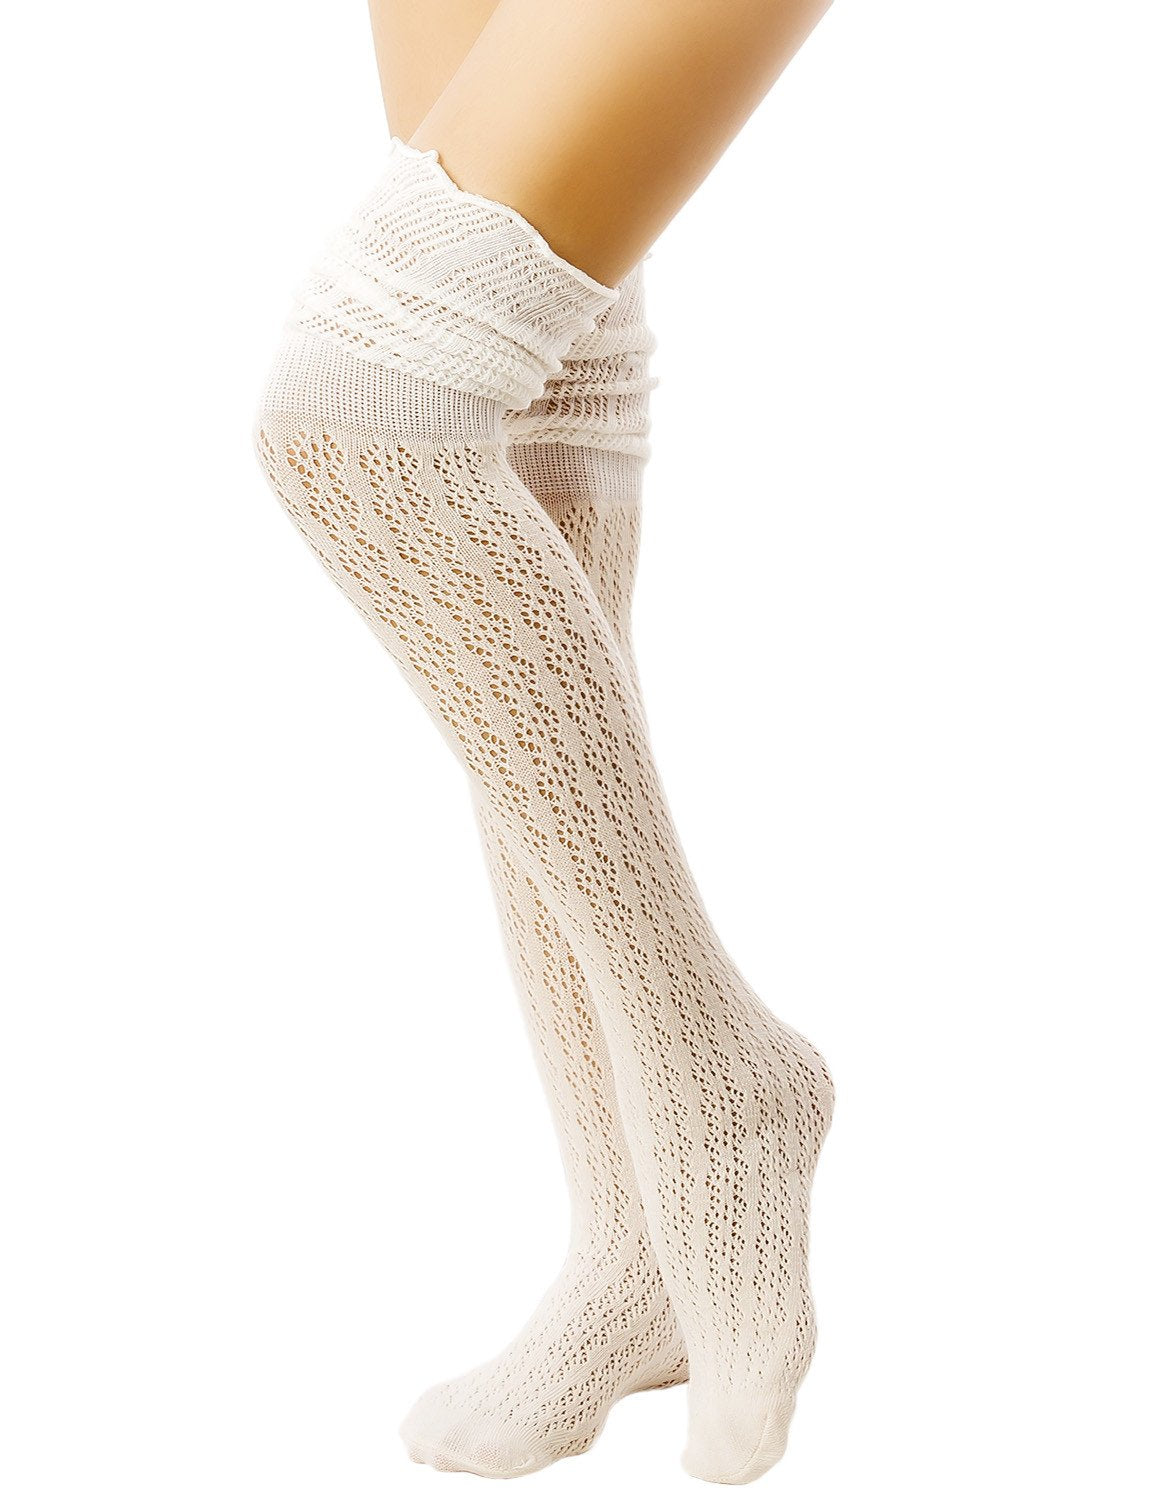 Women's Knitting Thermal Stitching Cuffs Japanese Style Thigh High Socks, Size: One Size, Beige